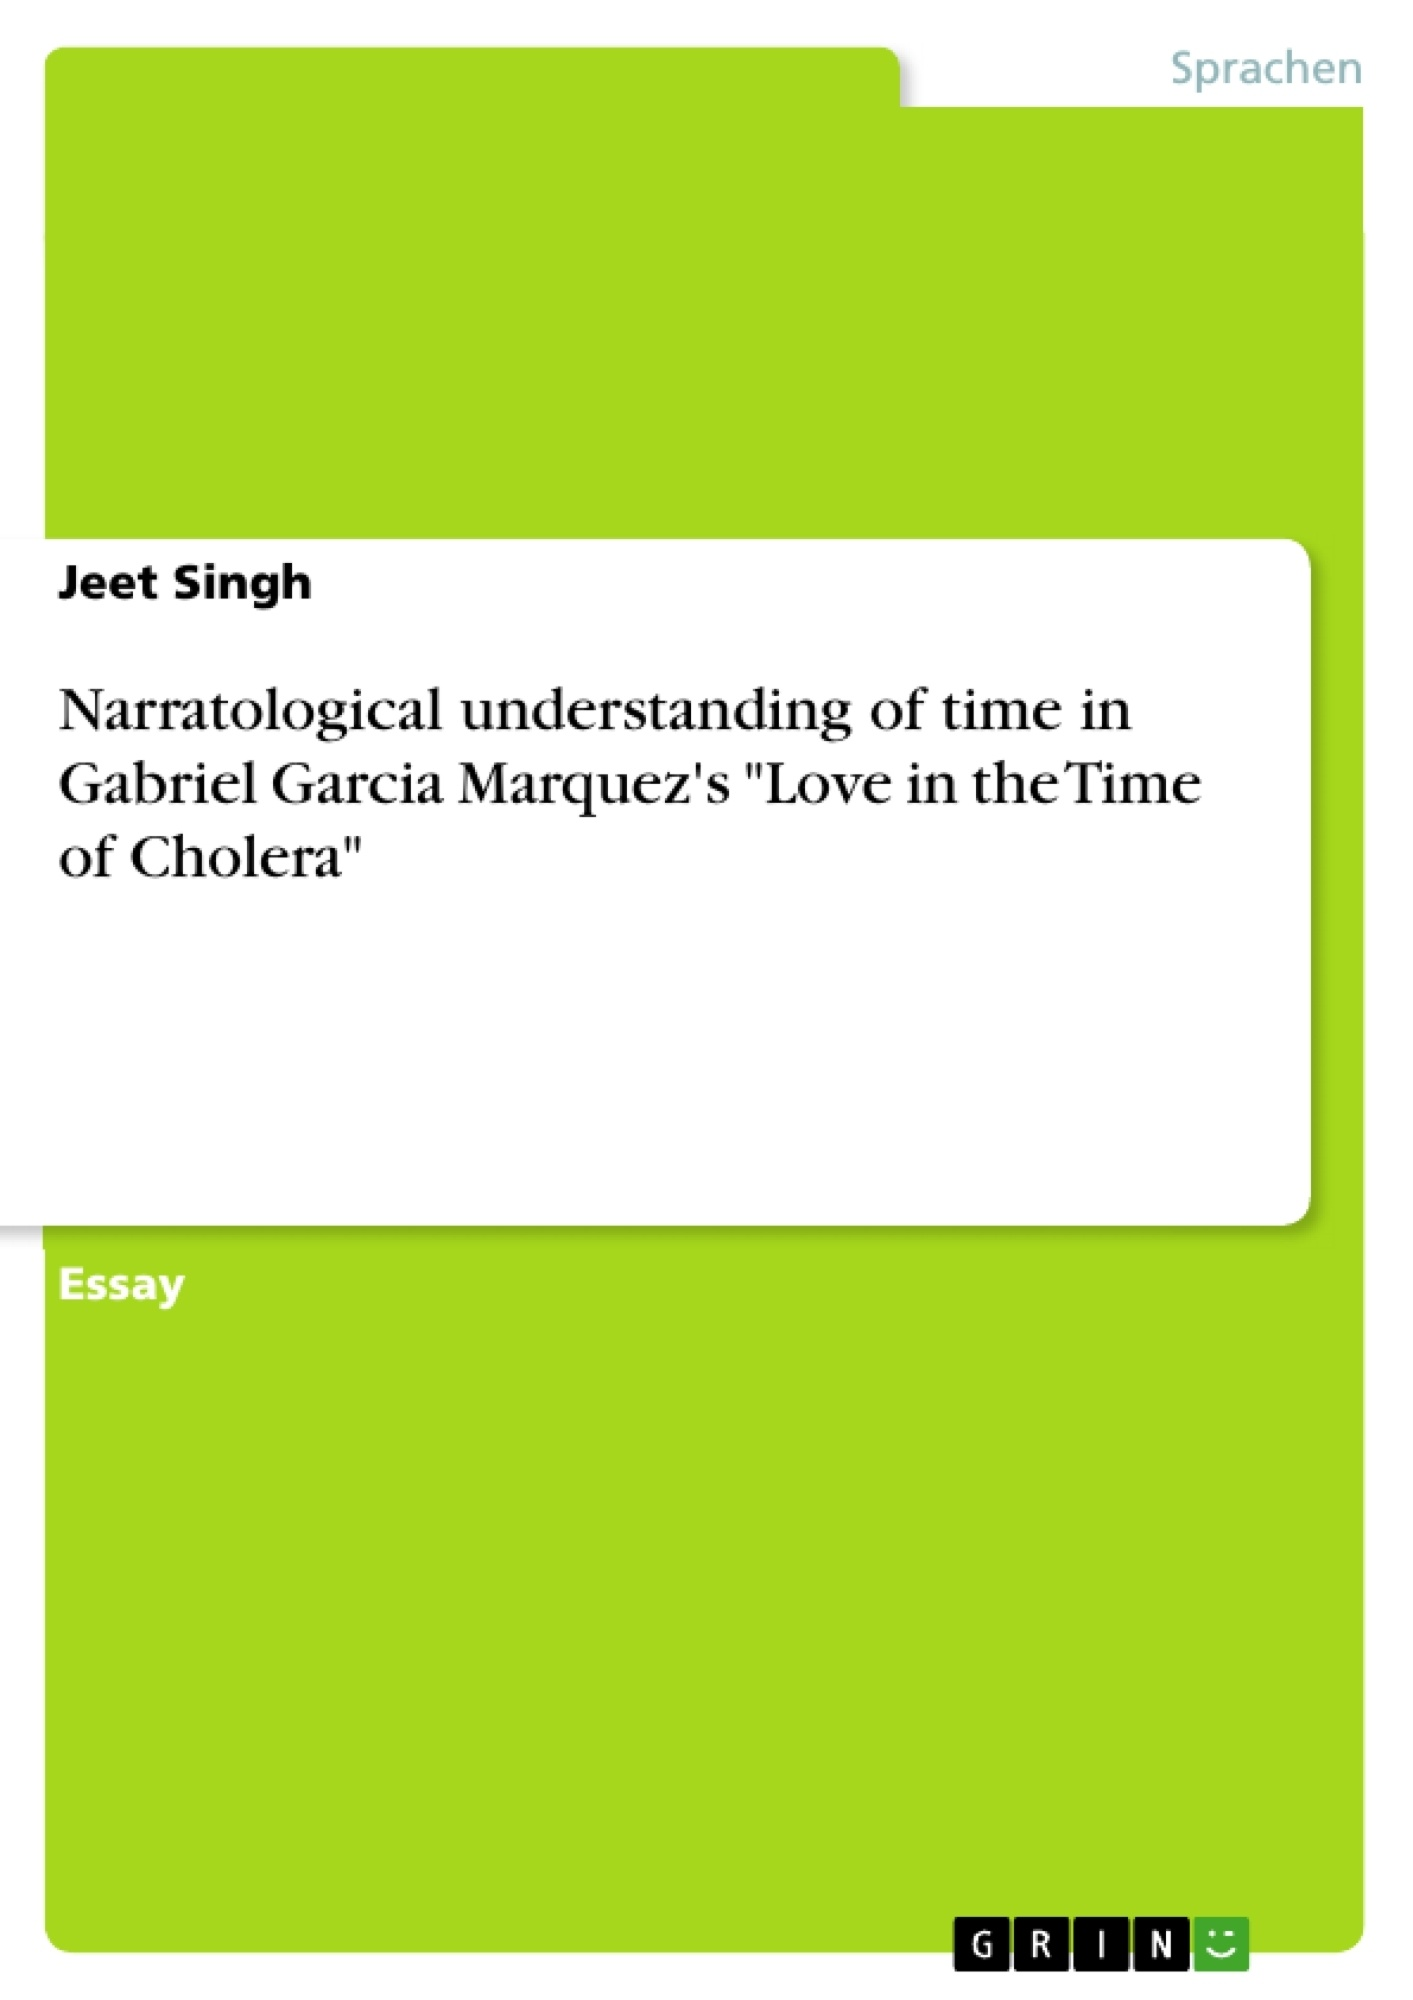 narratological understanding of time in gabriel garcia marquez s narratological understanding of time in gabriel garcia marquez s masterarbeit hausarbeit bachelorarbeit veratildeparaffentlichen